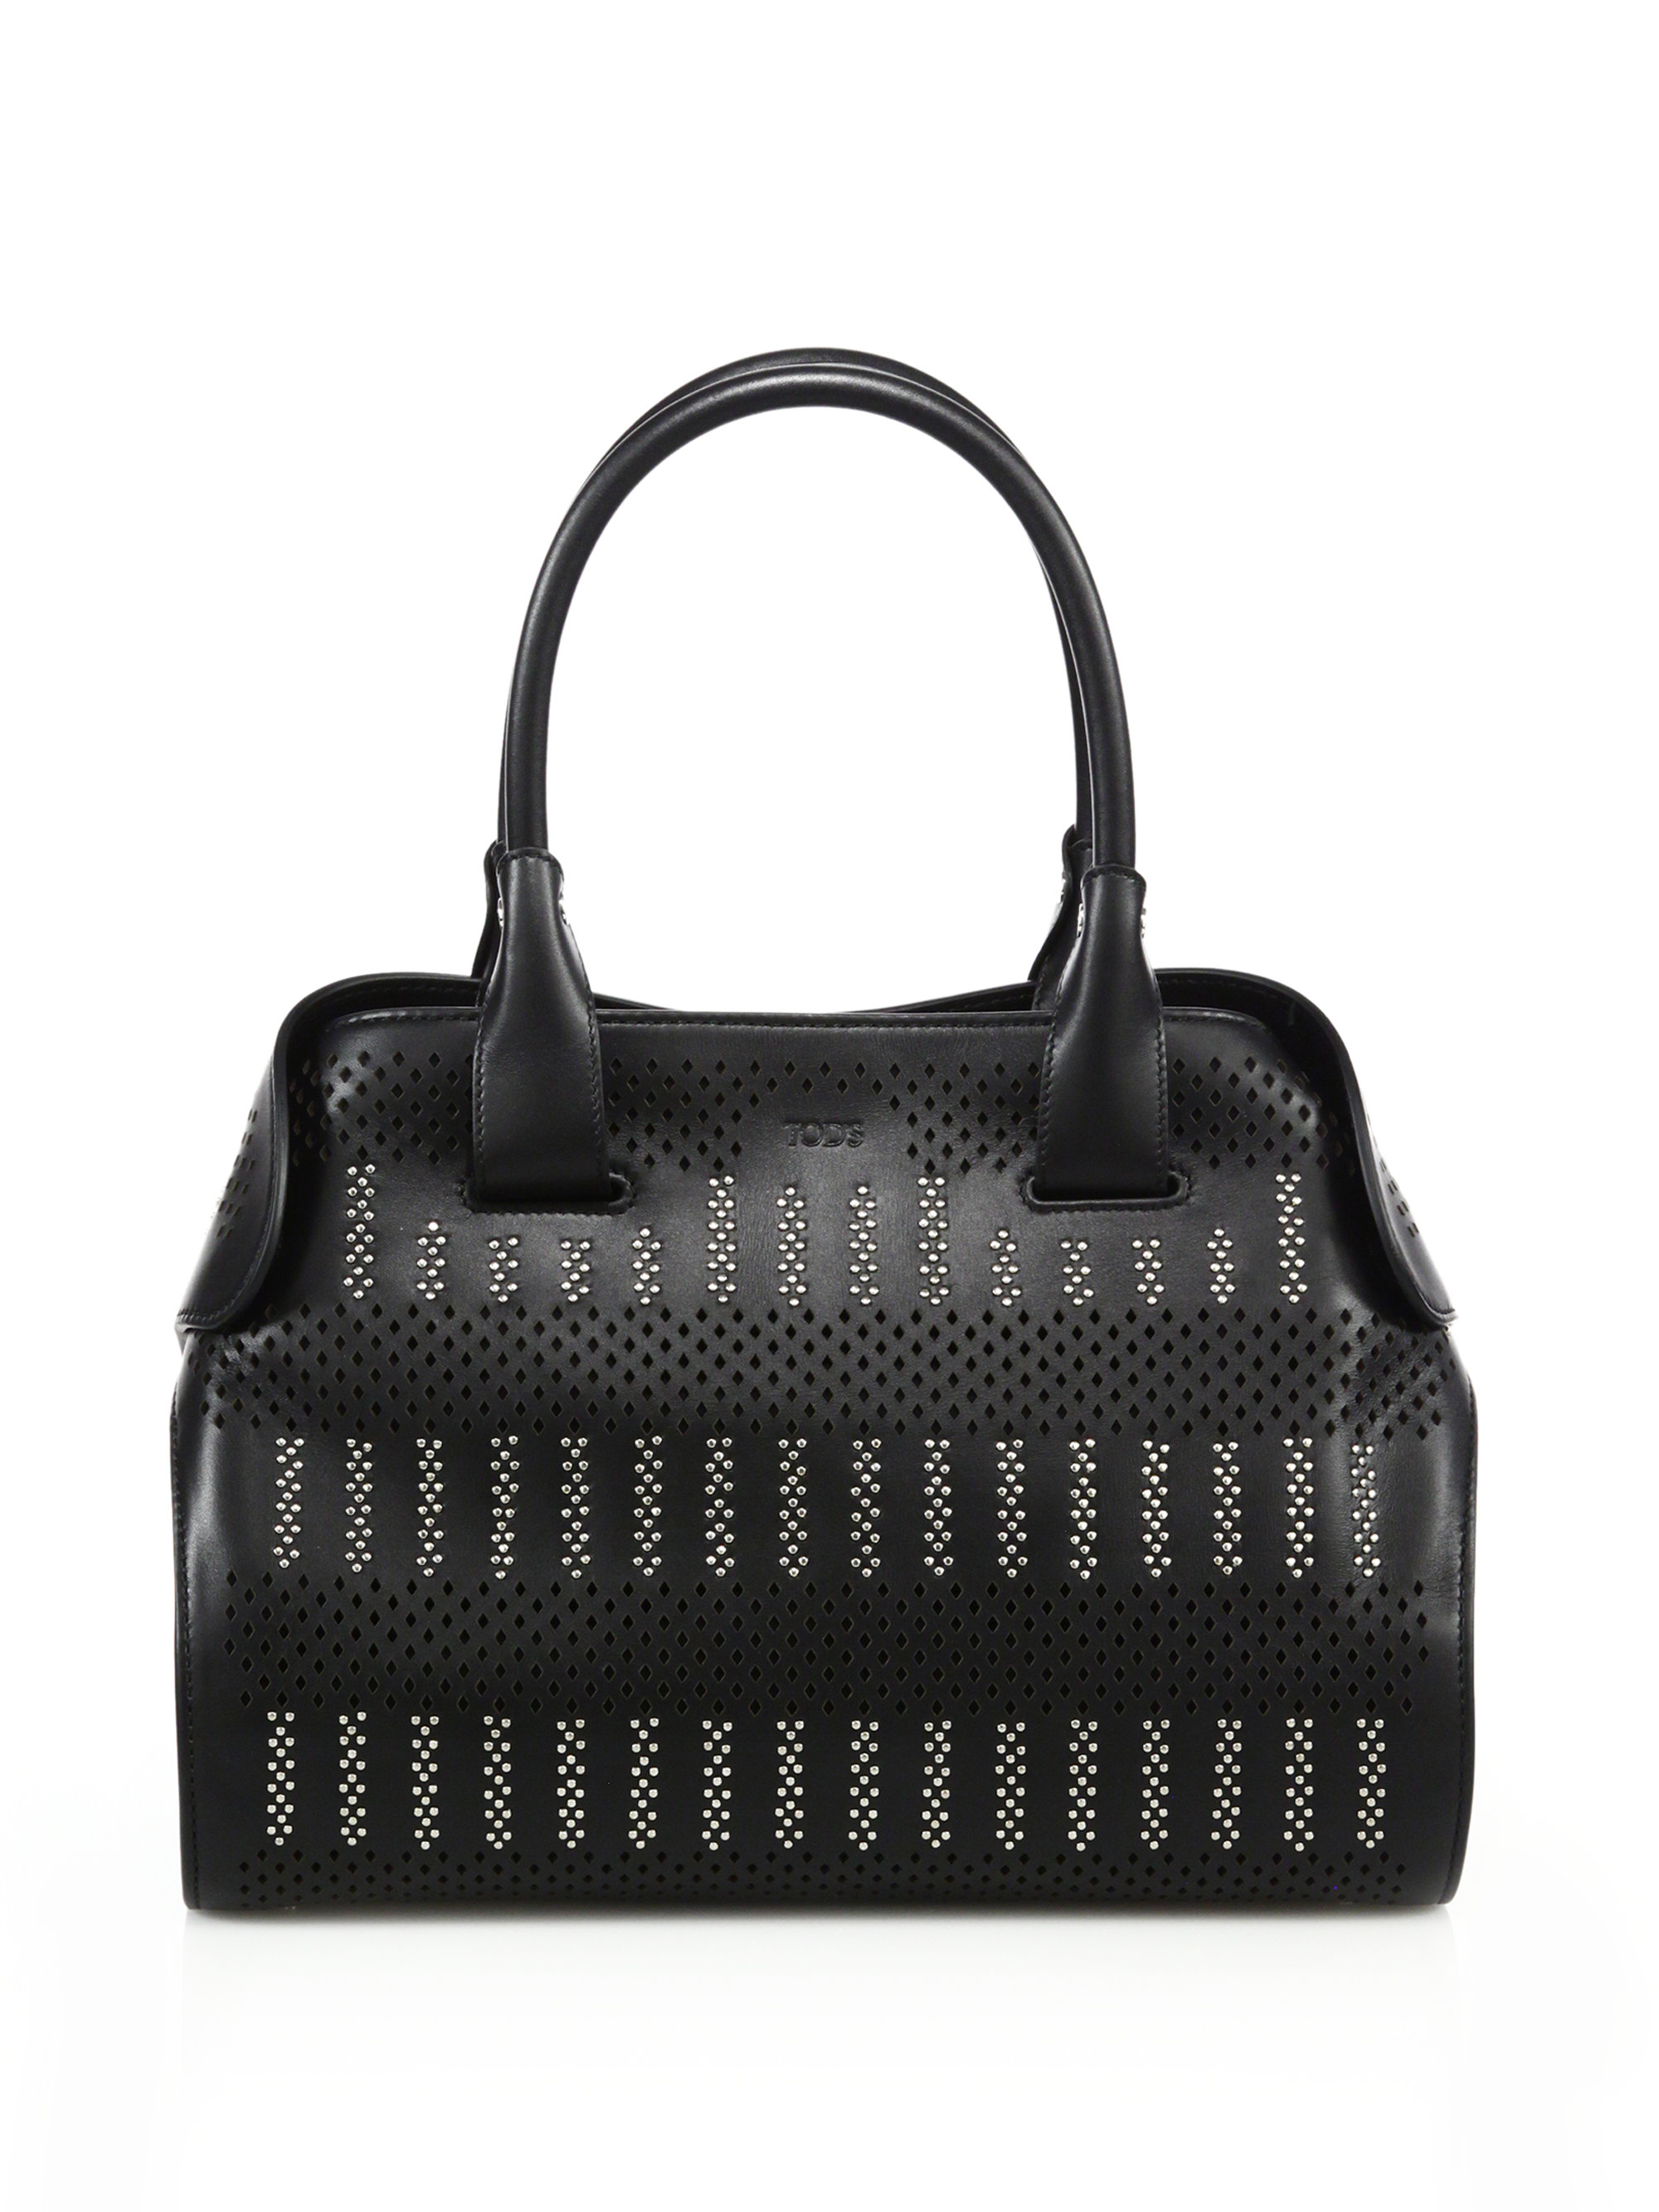 8de64a123b7 Tod's Cape Small Studded Laser-cut Leather Satchel in Black - Lyst